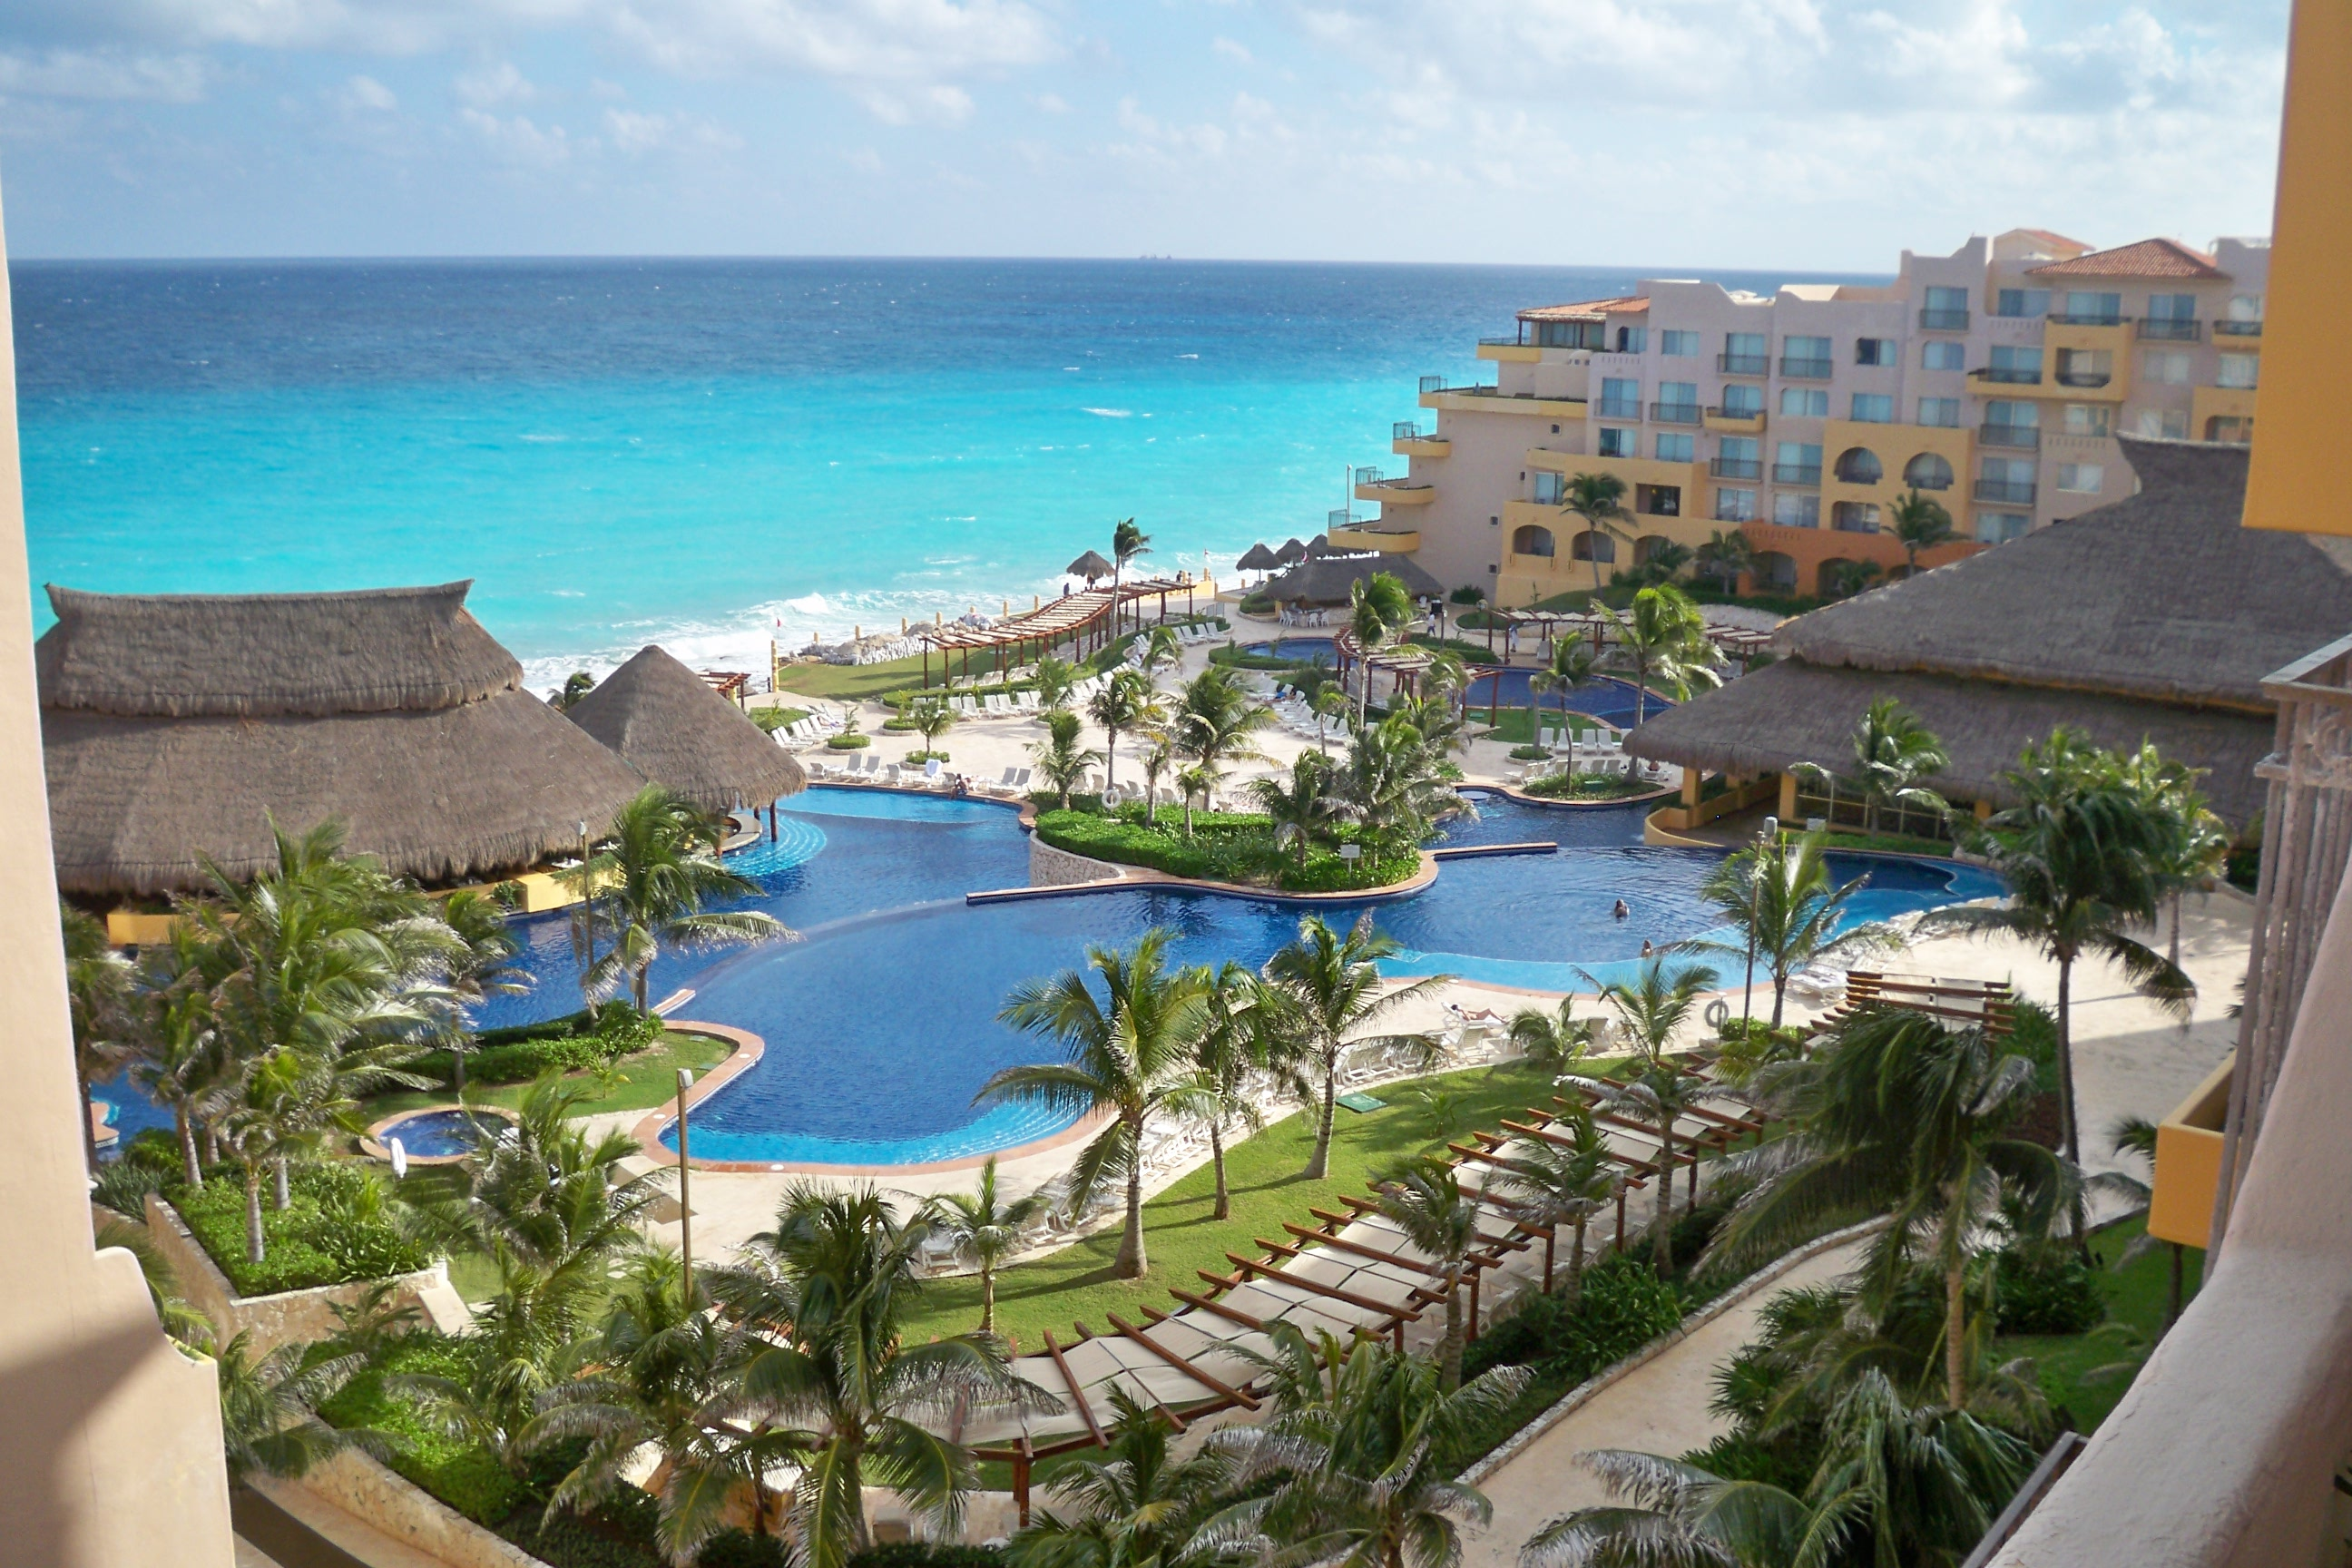 Cancun Hotel With Pool In Room